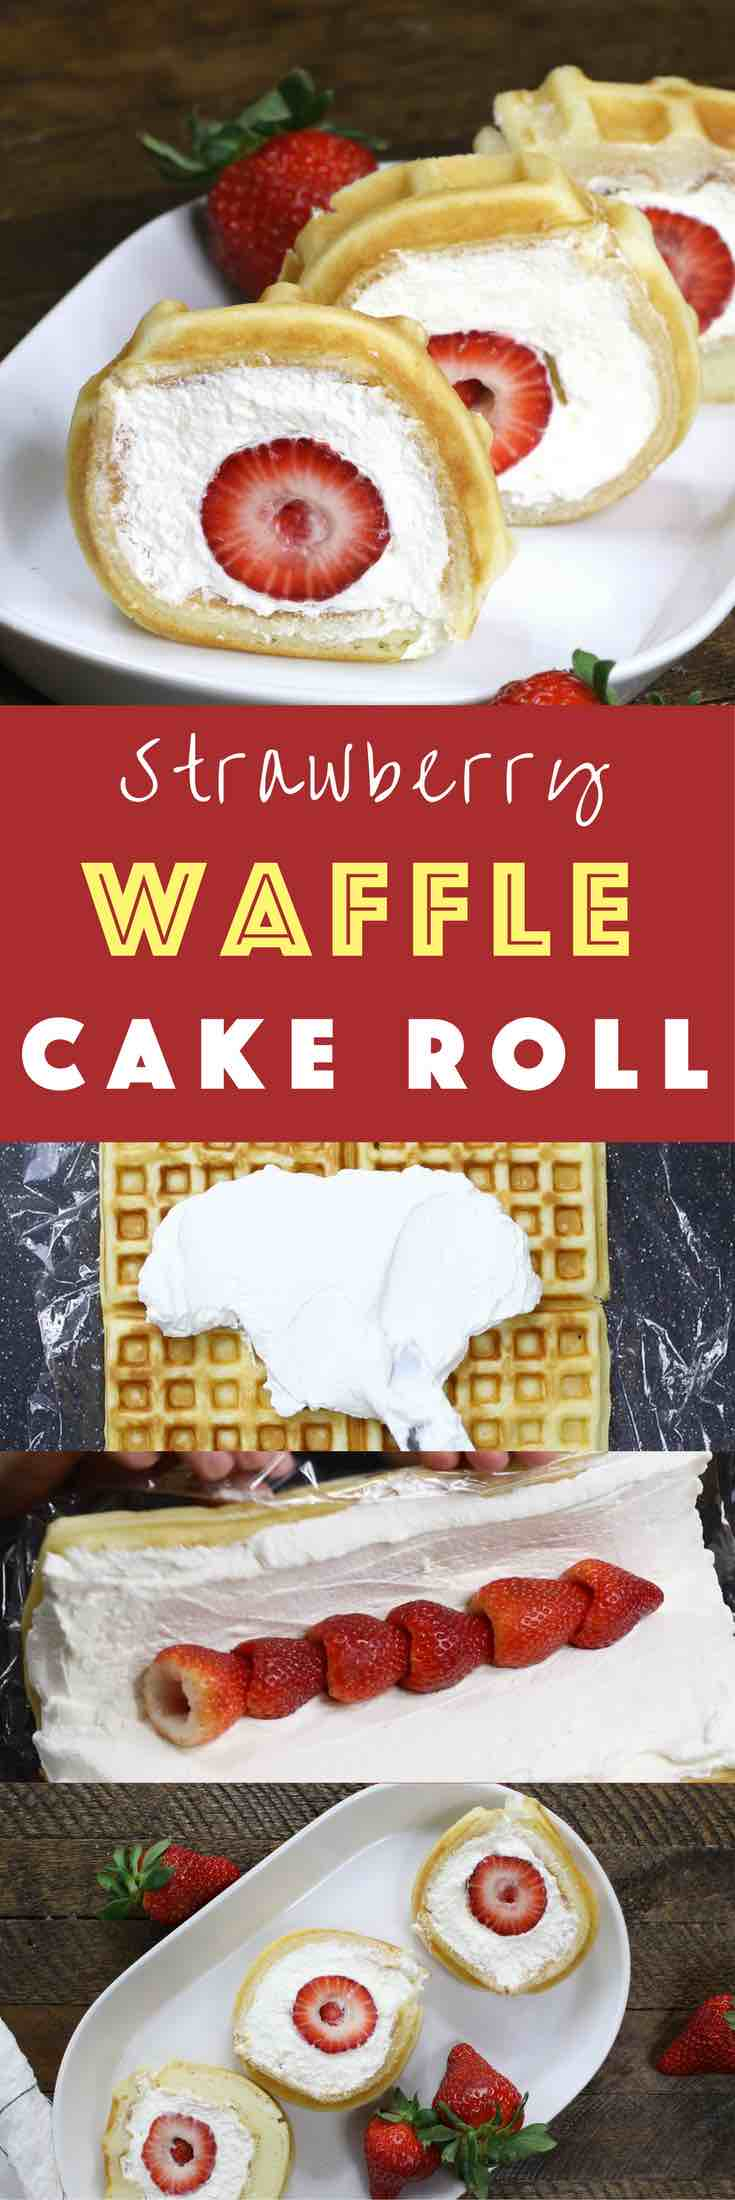 Strawberry Waffle Cake Roll - a quick and easy breakfast, snack or dessert made with waffle mix or frozen waffle, fresh strawberries, and whipped cream. Soft waffle topped with whipped cream, and strawberries. It melts in your mouth! So good and so beautiful! No bake dessert, vegetarian!   tipbuzz.com